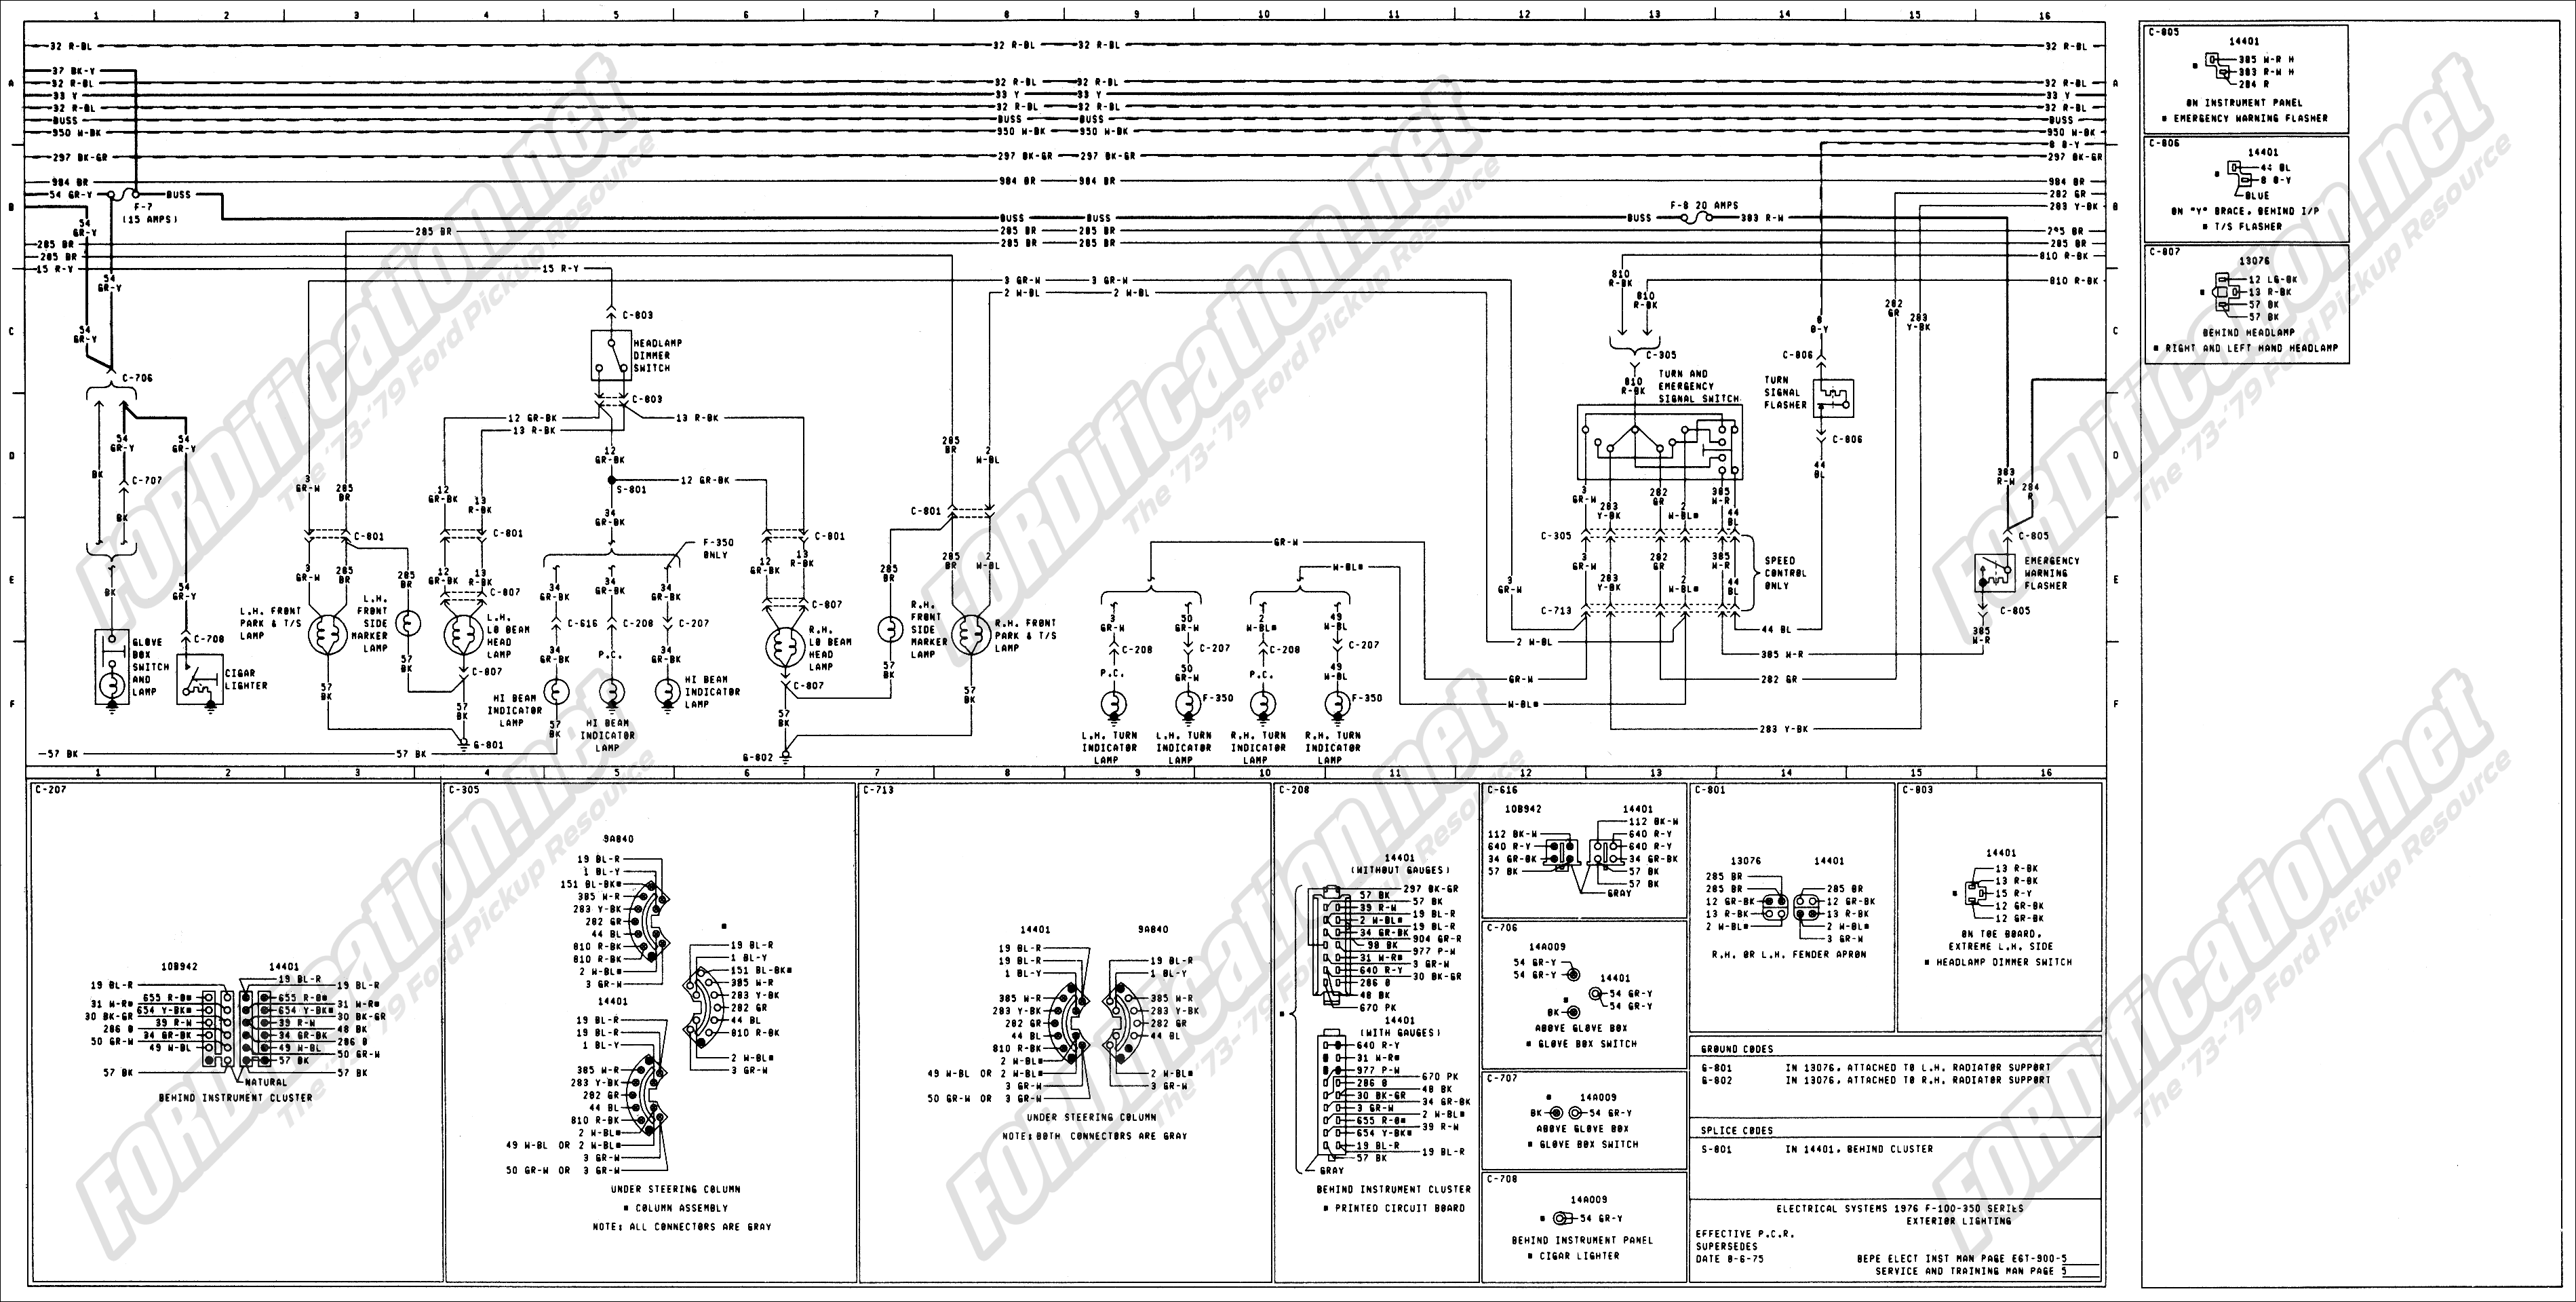 1973 Ranchero Electrical Wiring Diagrams Ford Data Wiring Schema Ford 555  Wiring-Diagram 1973 Ford Ranchero Wiring Diagram